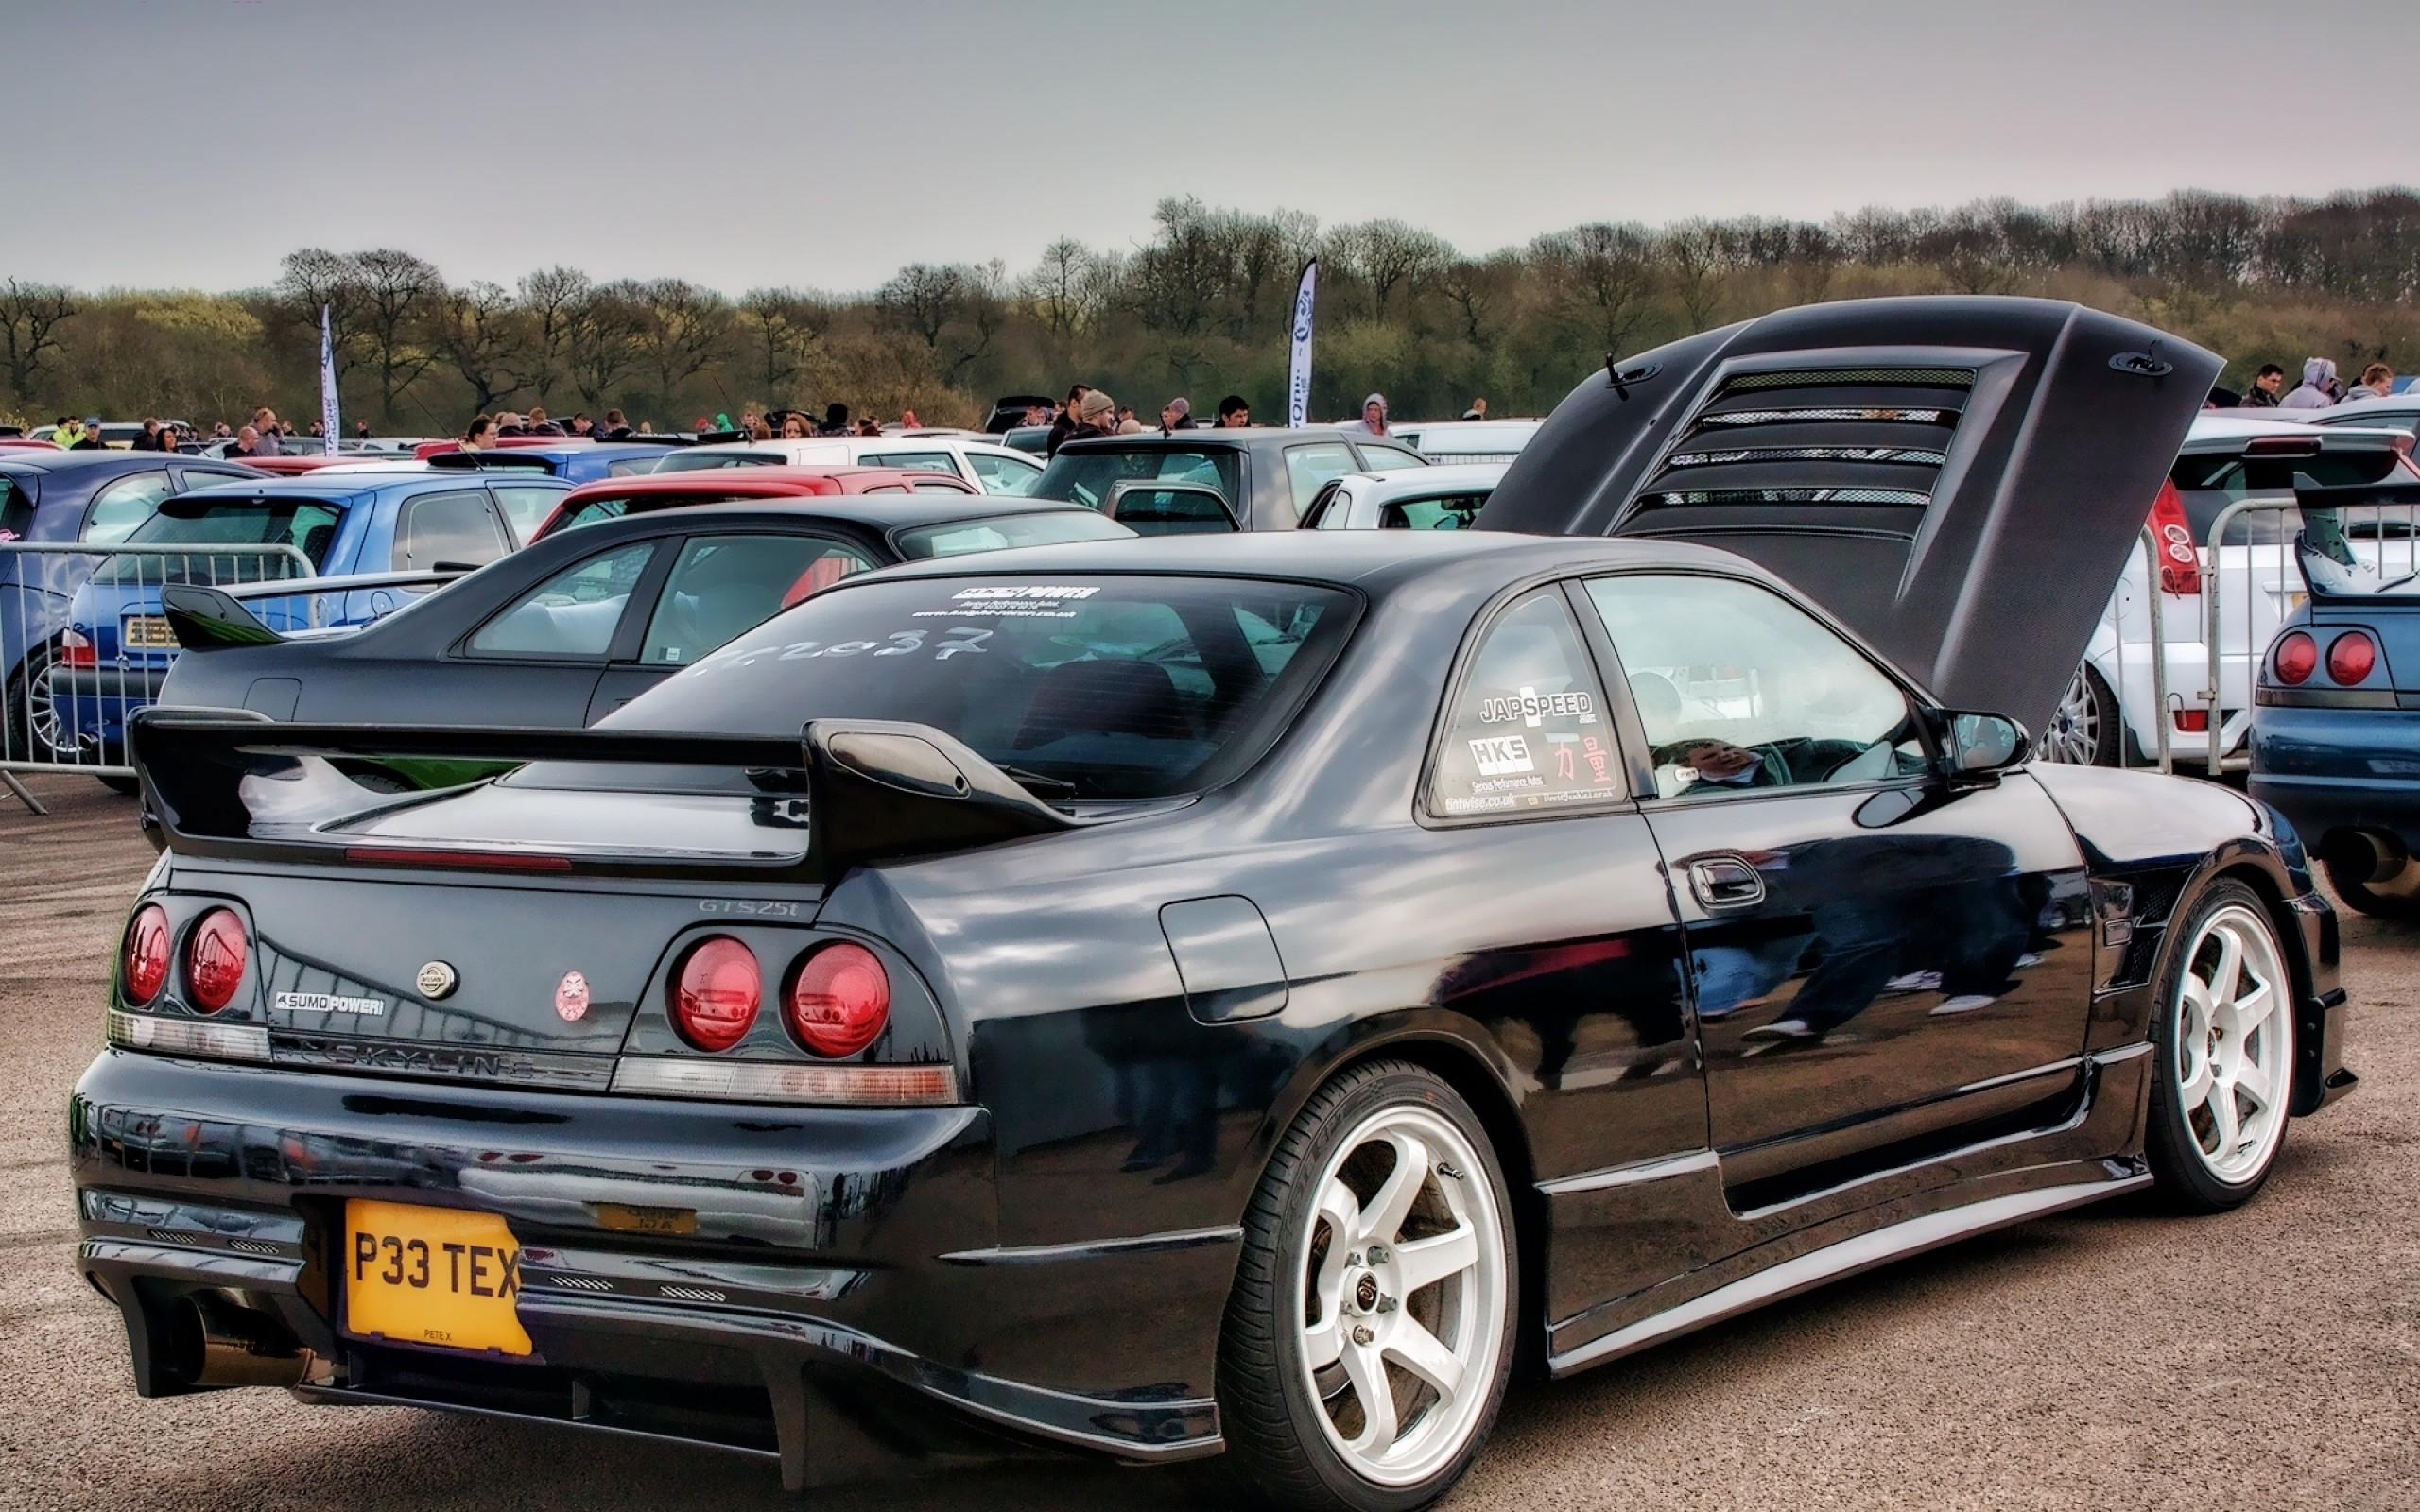 Nissan Gtr Wallpaper Iphone X Nissan Skyline Gtr R34 Wallpapers